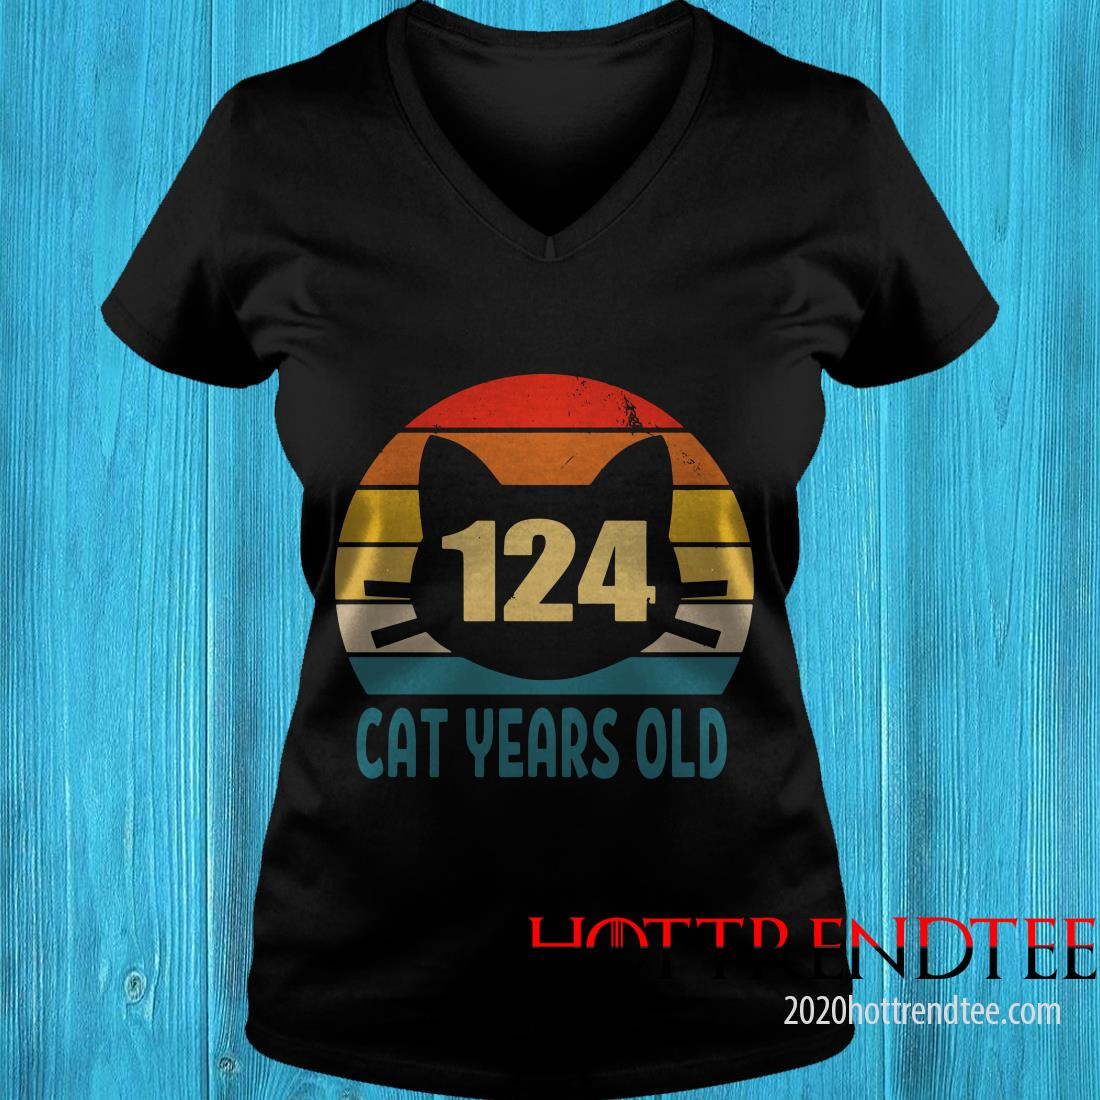 124 Cat Years Old Vintage Women's T-Shirt